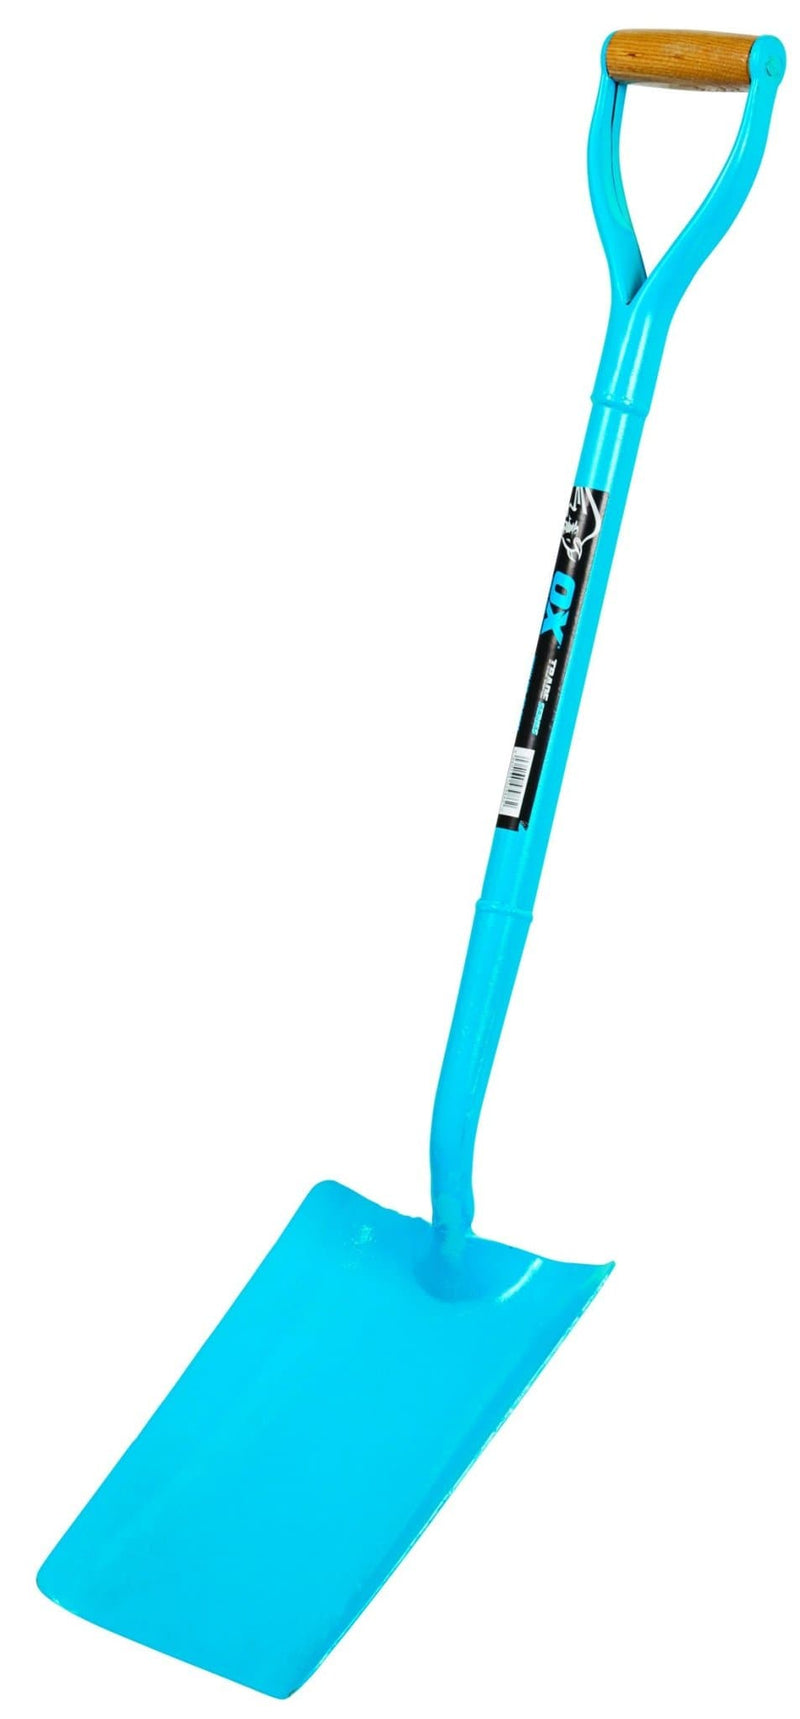 OX Trade Solid Forged Taper Mouth Shovel - Shovel - Trade Building Products